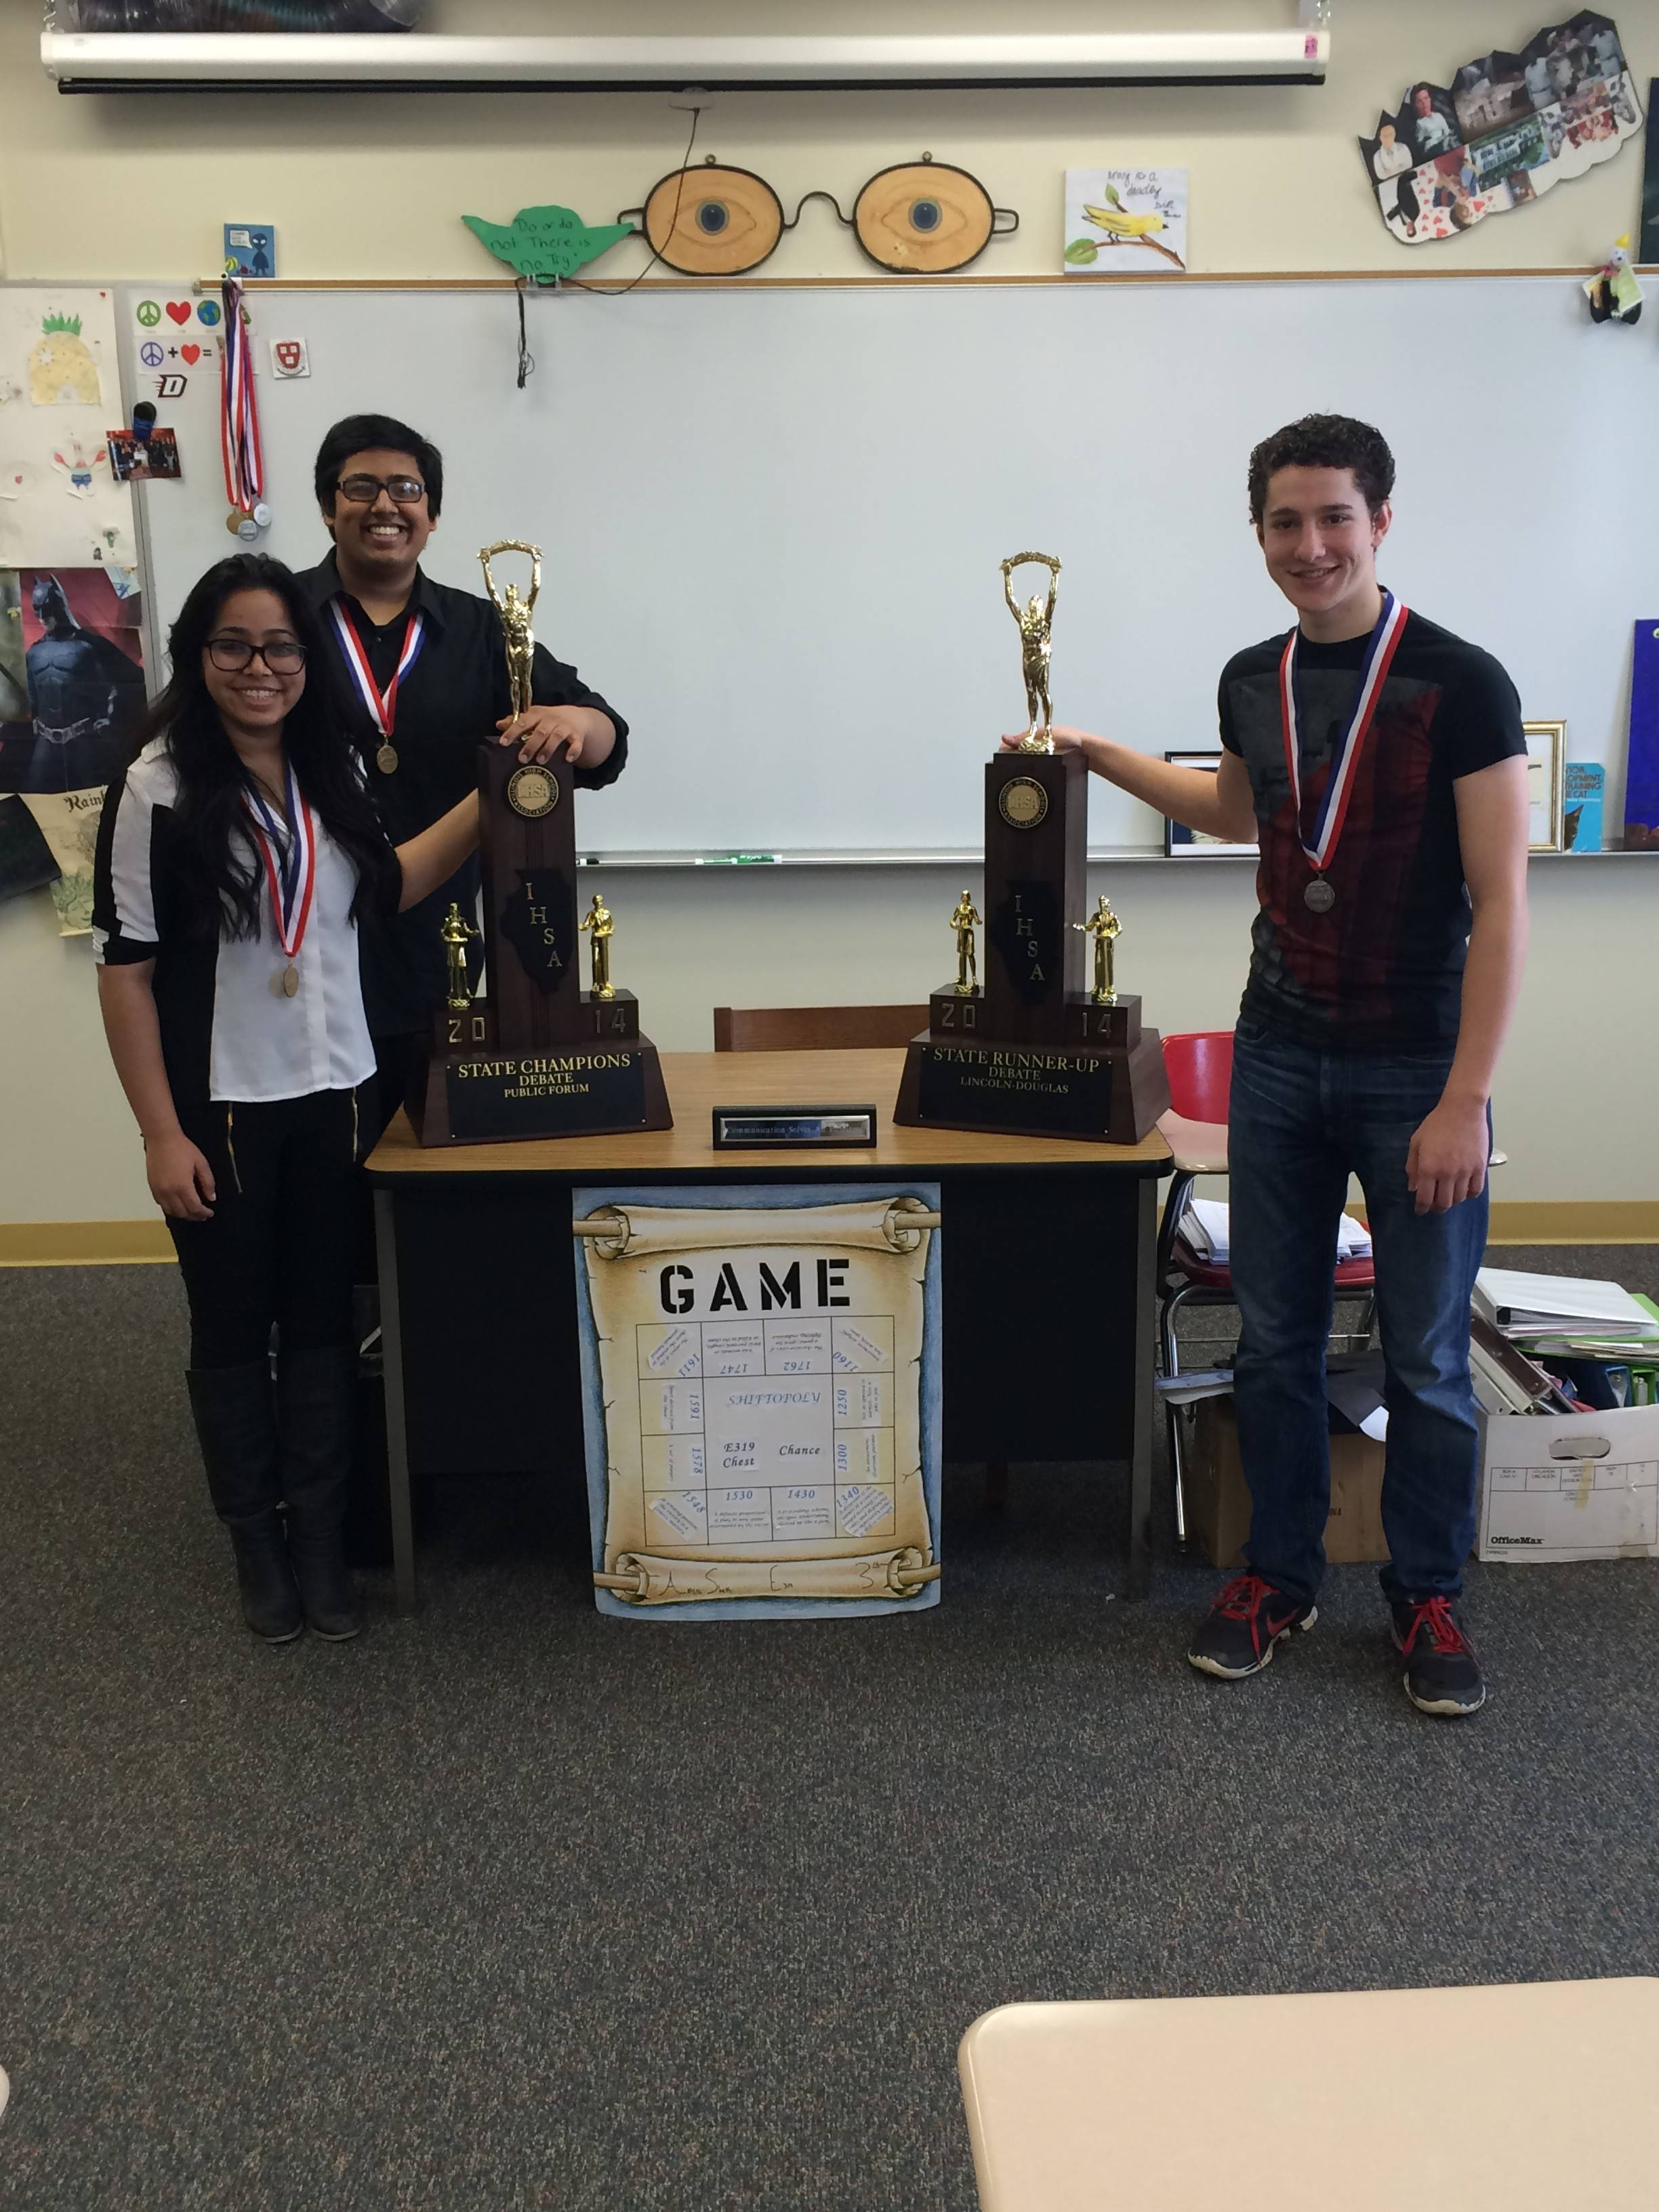 A few members of Schaumburg High School's state champion debate team pose with their state trophies and medals. From left are sophomores Jessica D'Souza and Raza Haque and junior Nathaniel Leonhardt, who was named captain of the All-State Debate Team.